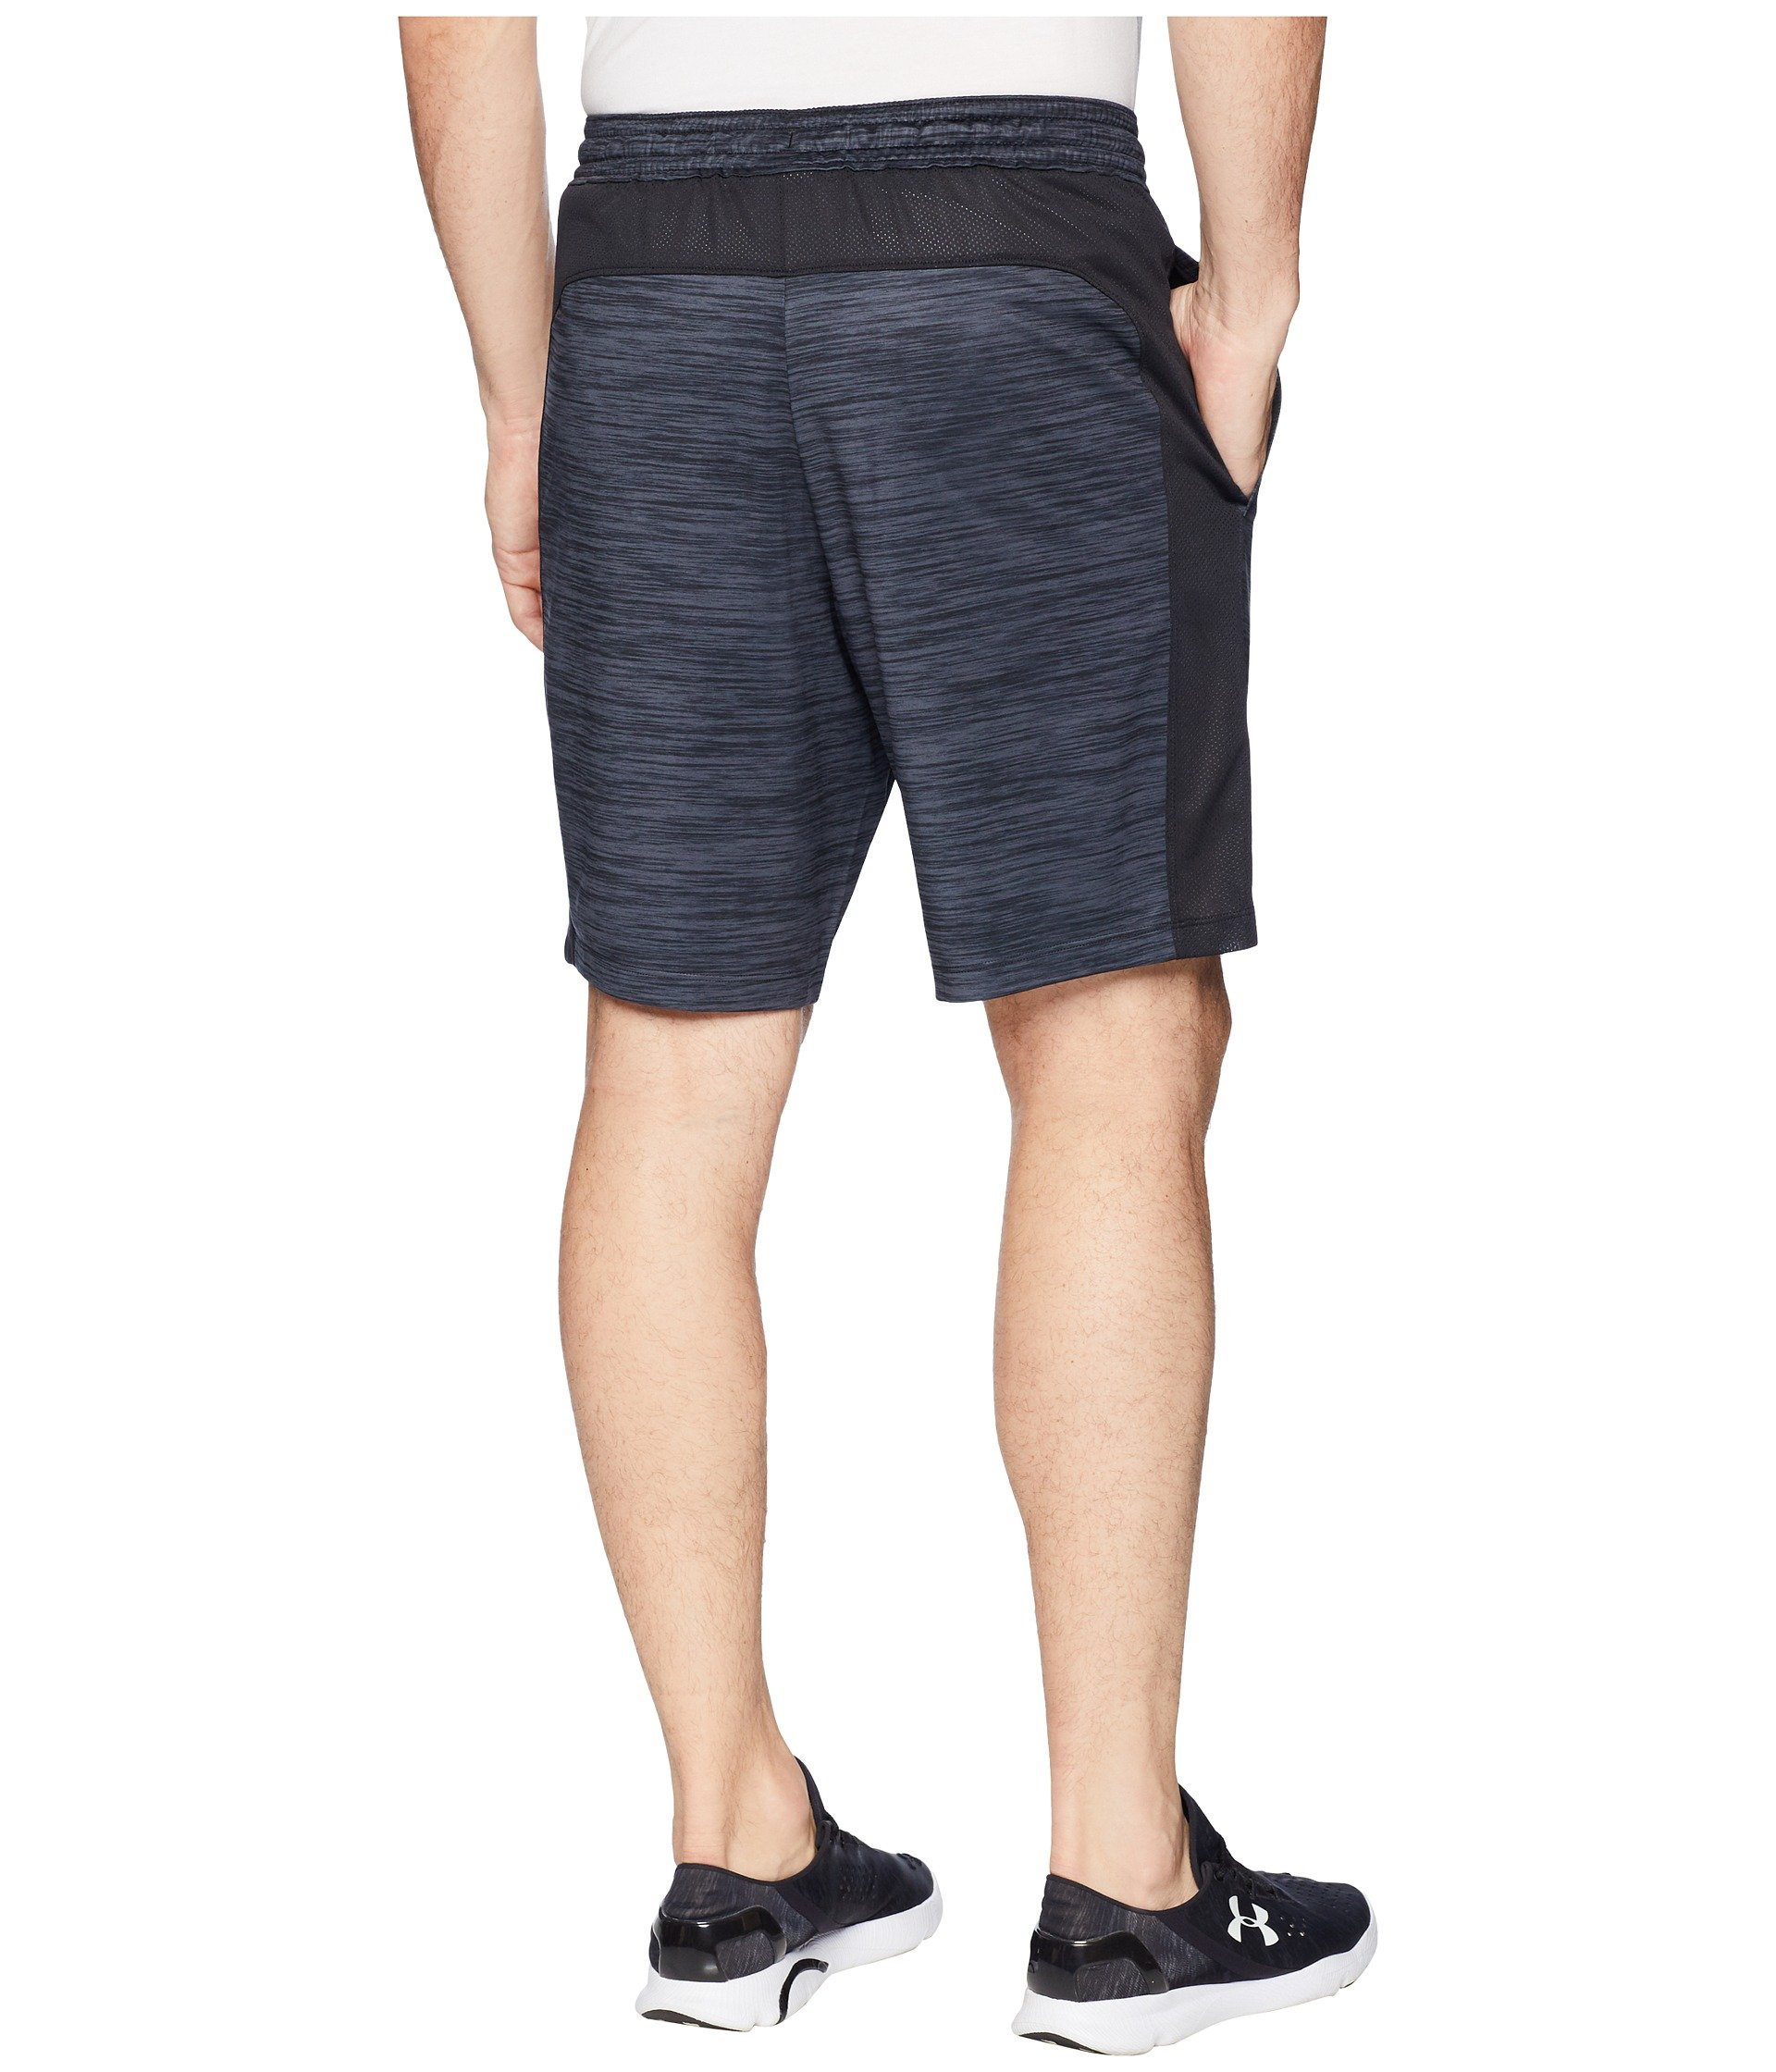 Shorts Gray Armour stealth Black 1 Ua Twist Mk Under vAXqwq